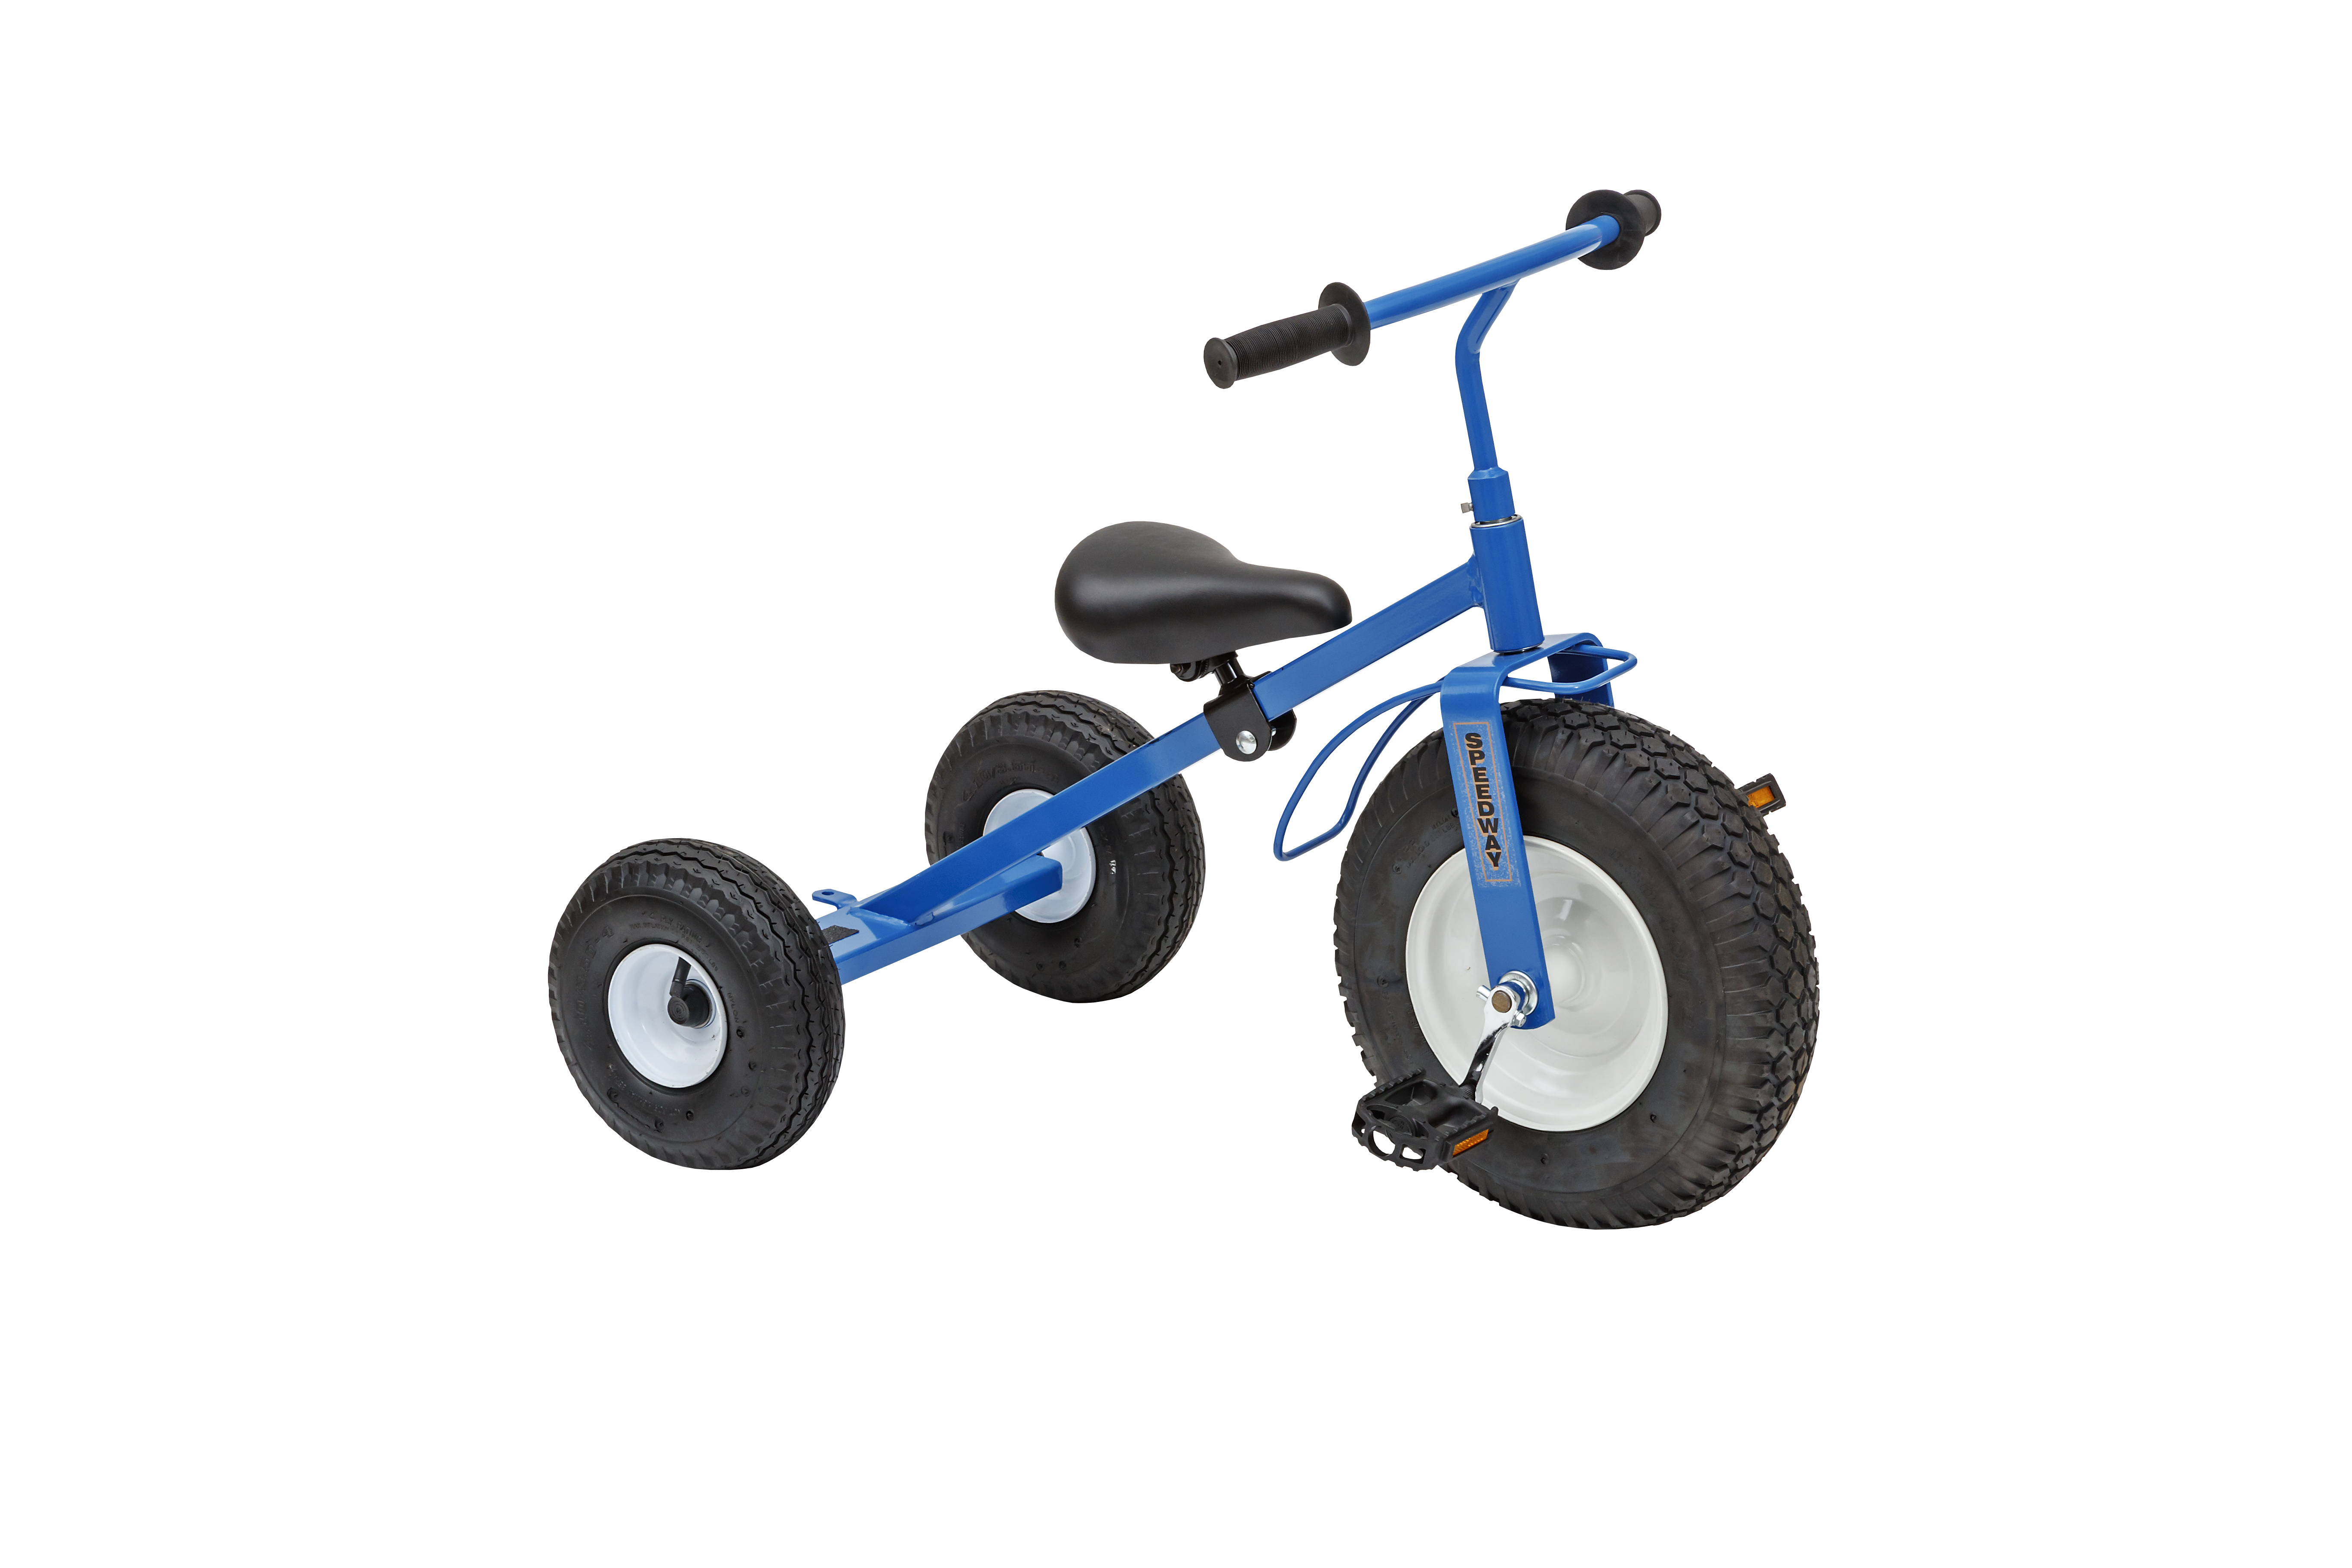 Speedway Tricycle for kids Model #1500